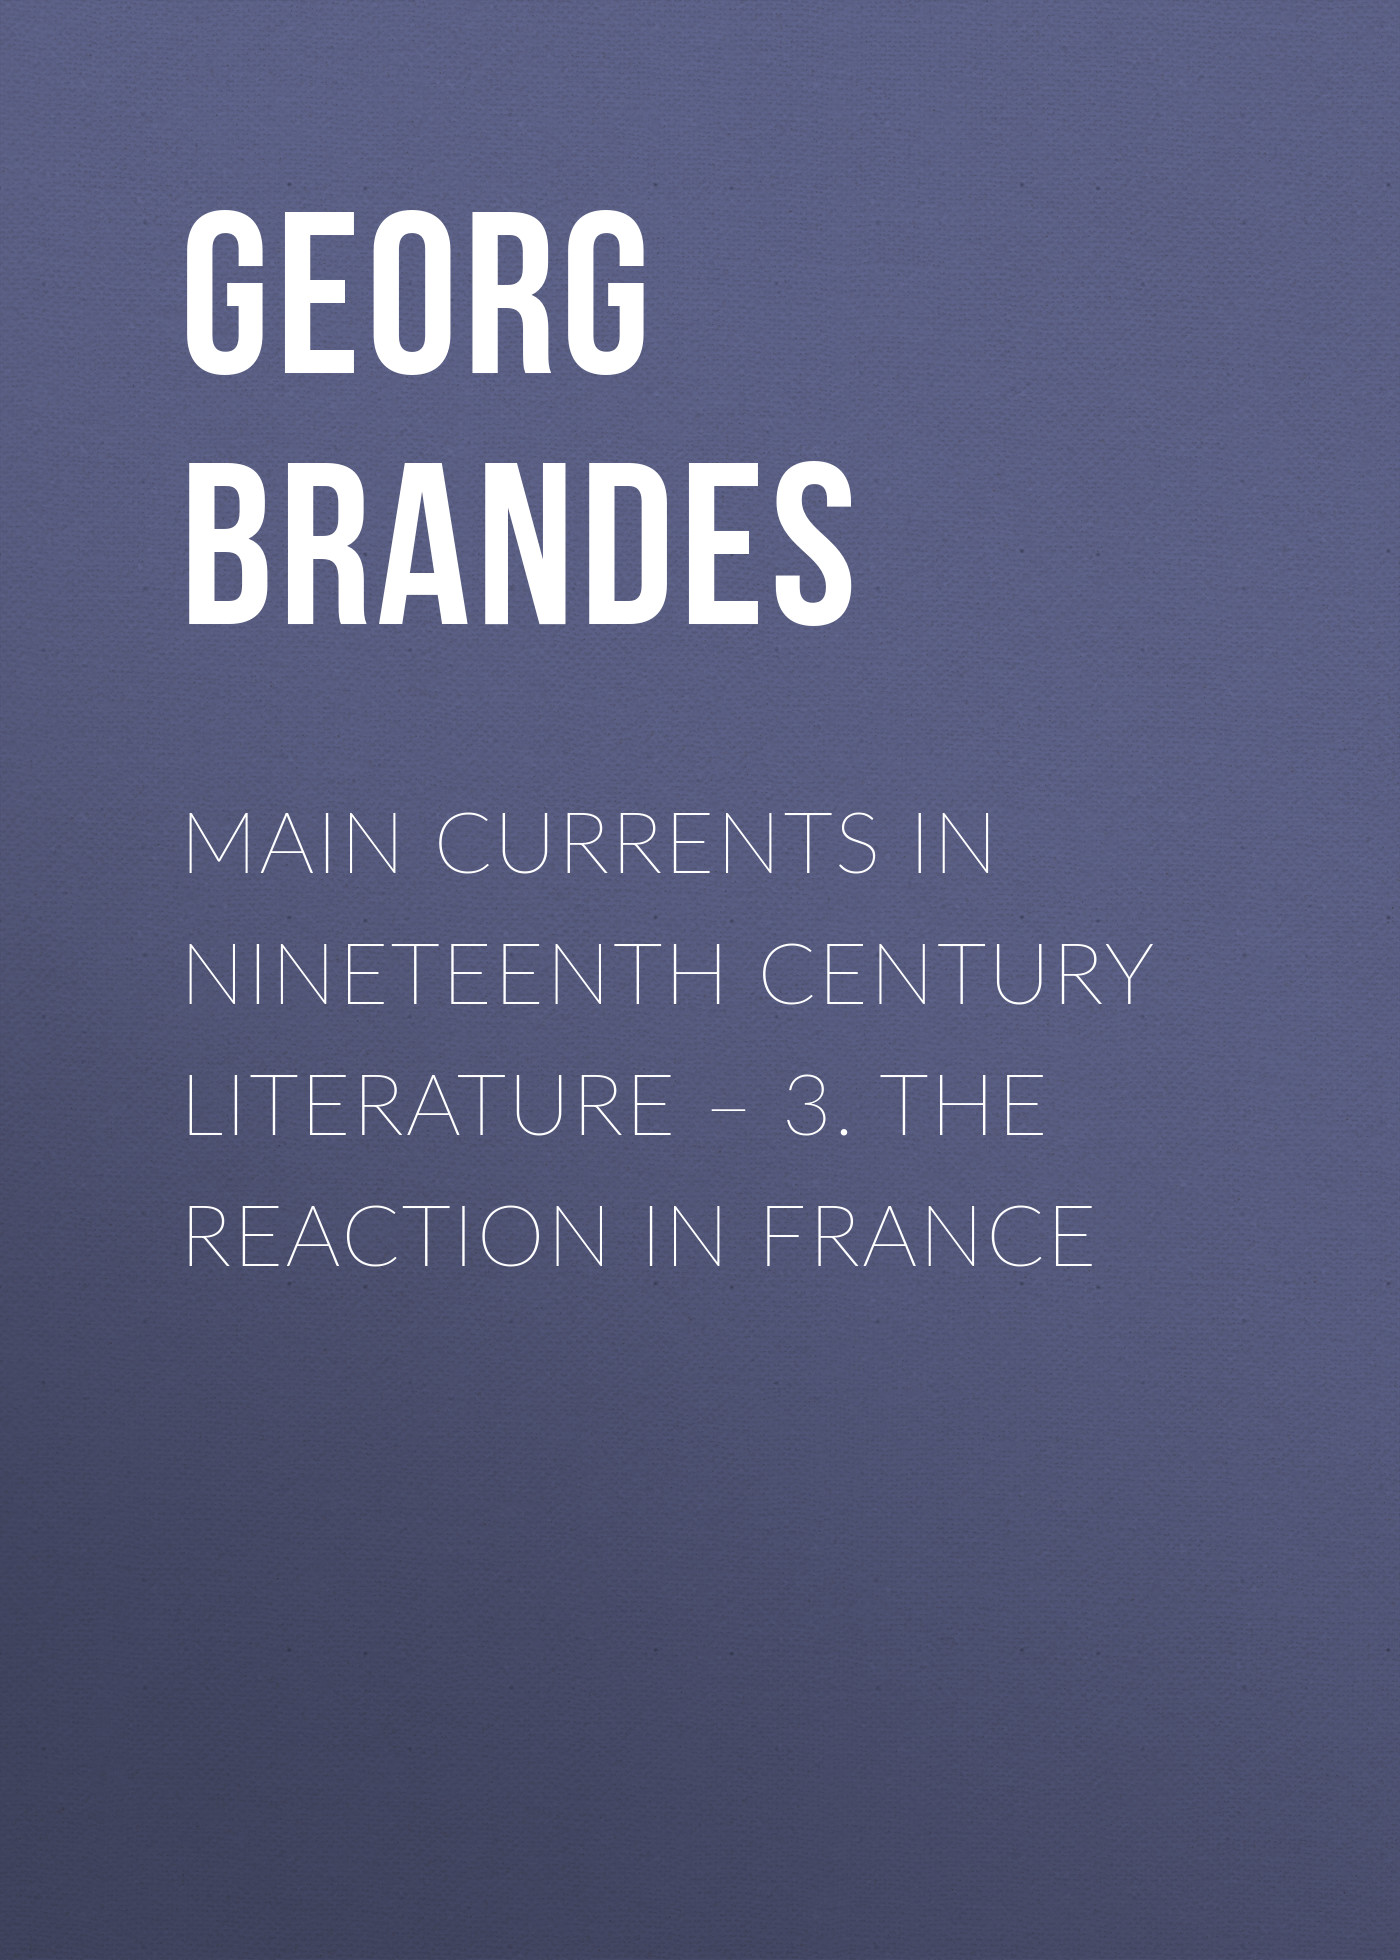 Georg Brandes Main Currents in Nineteenth Century Literature – 3. The Reaction in France